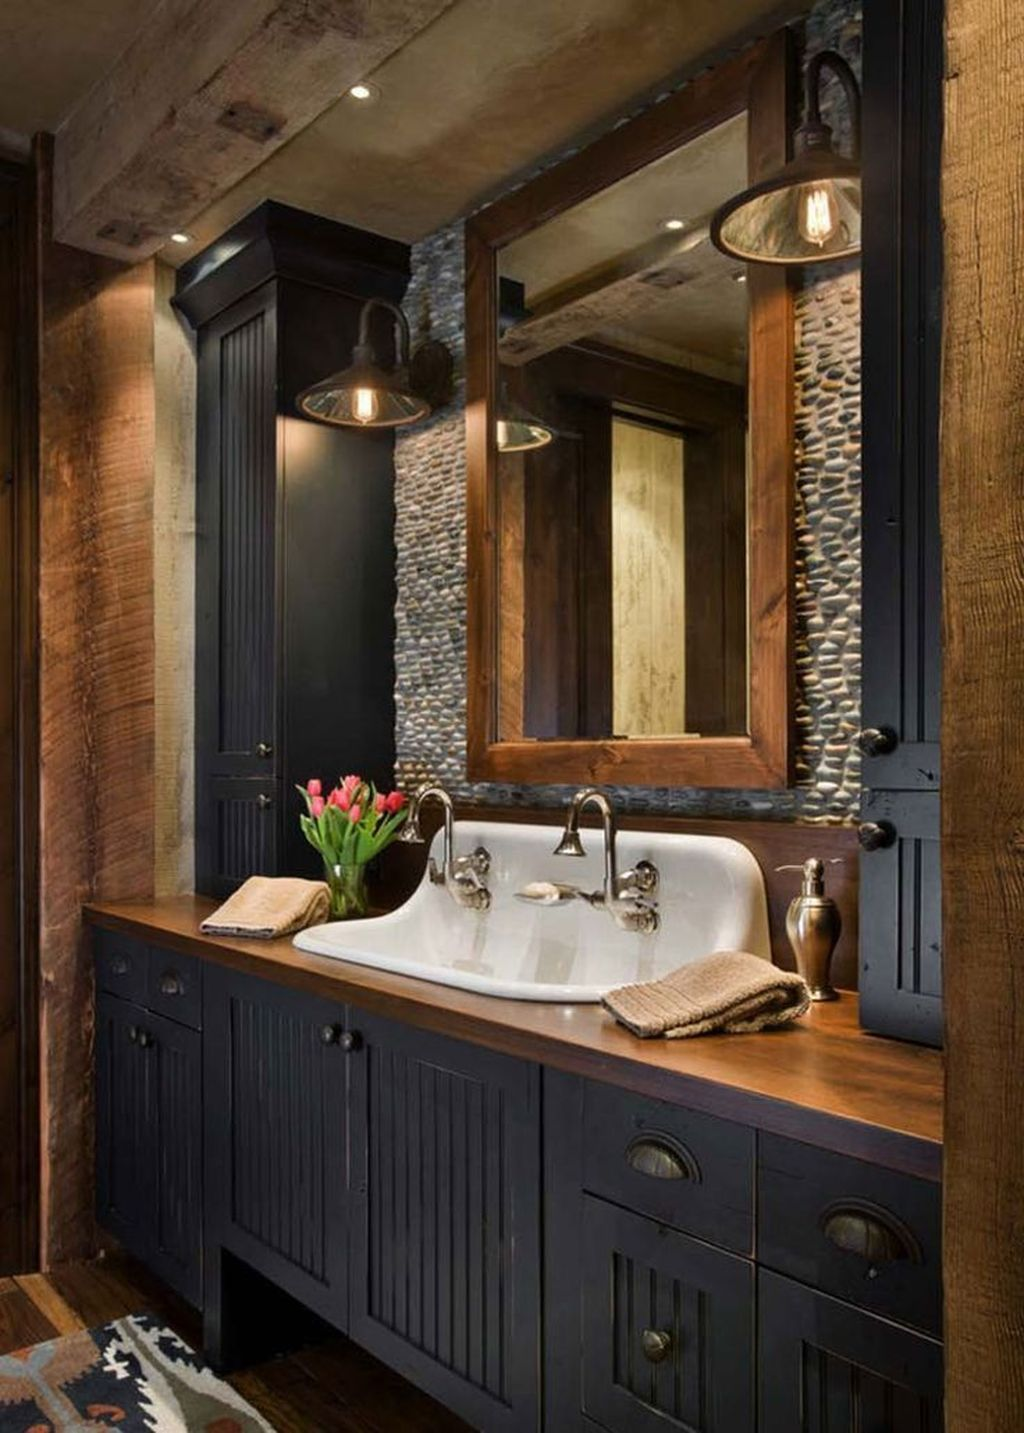 32 Awesome Rustic Bathroom Decorating Ideas Belihouse In 2020 Western Bathroom Decor Rustic Bathroom Vanities Western Bathrooms